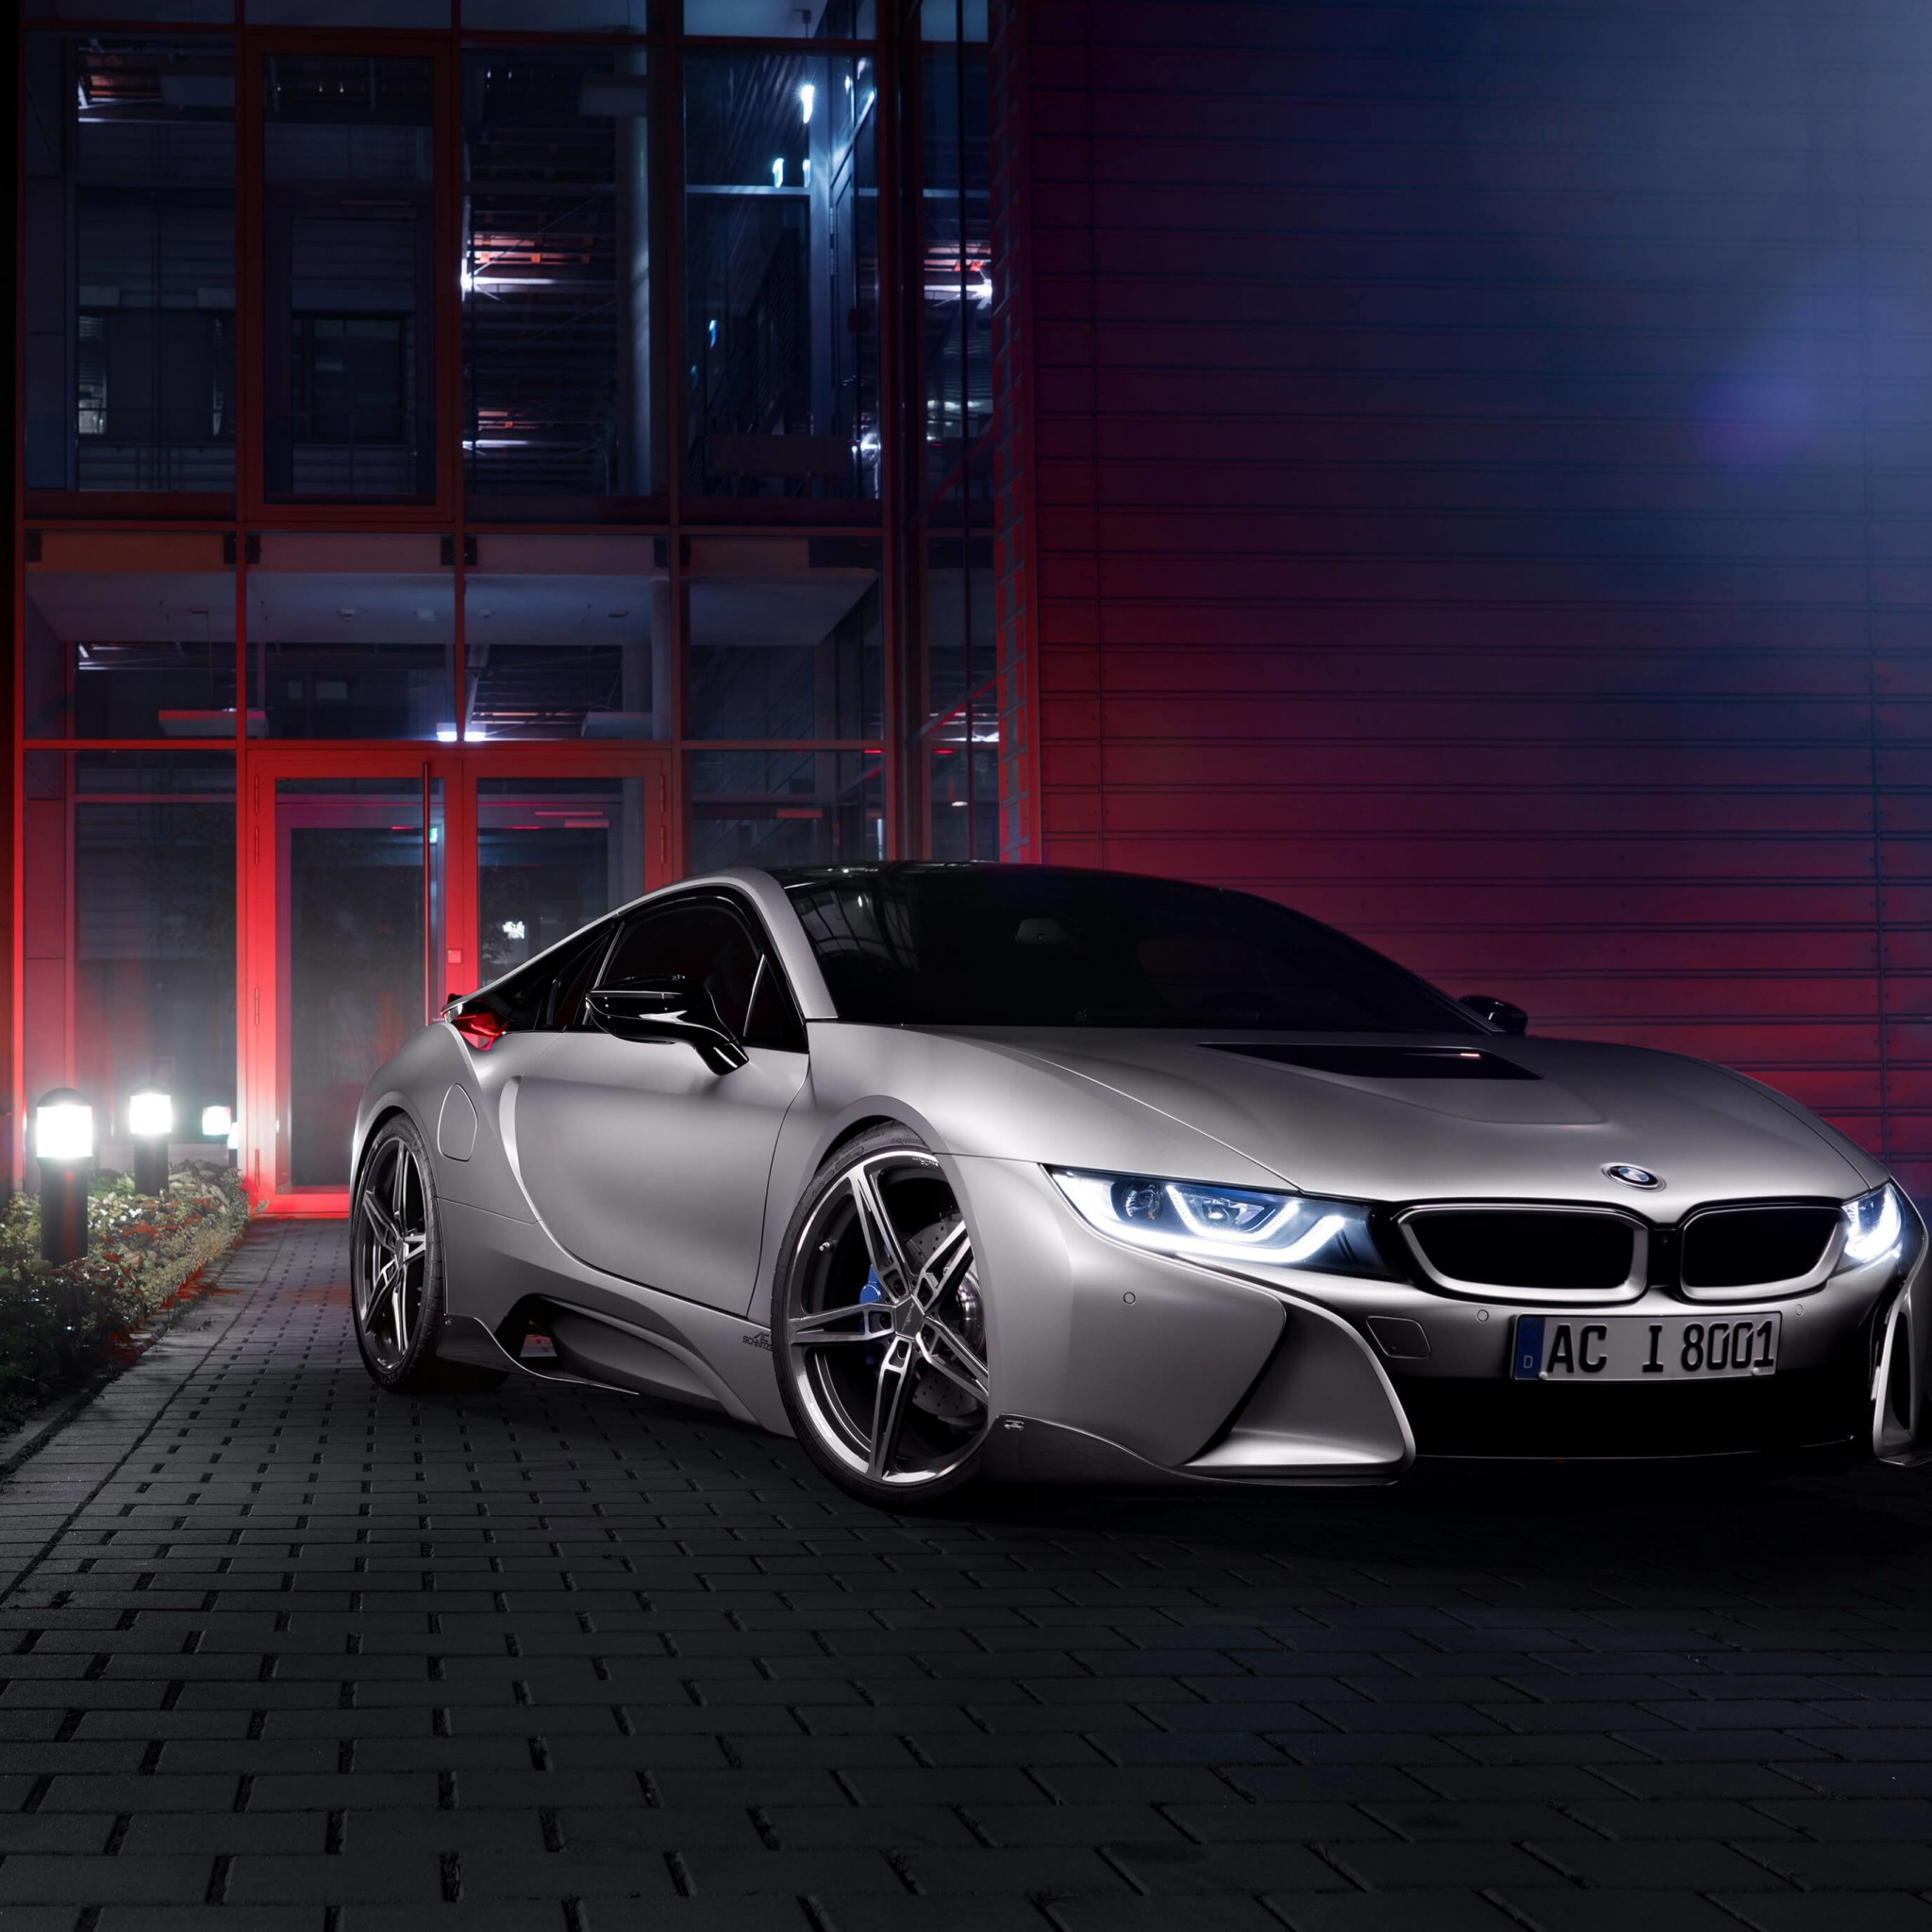 BMW i8 designed by AC Schnitzer Wallpaper for Google Nexus 9